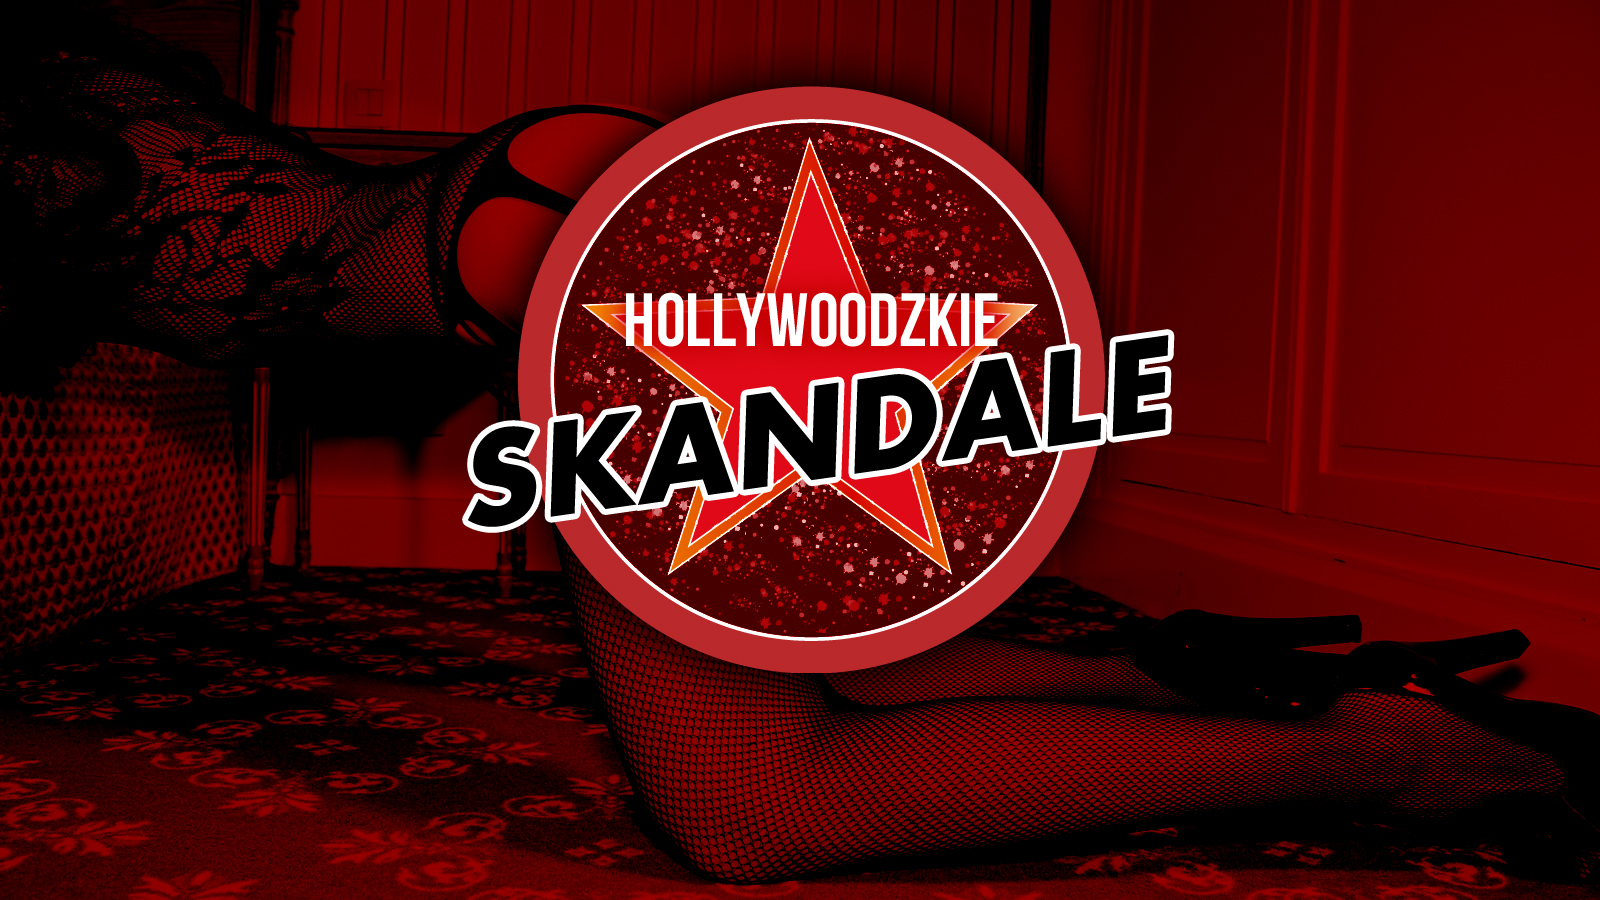 Hollywoodzkie skandale